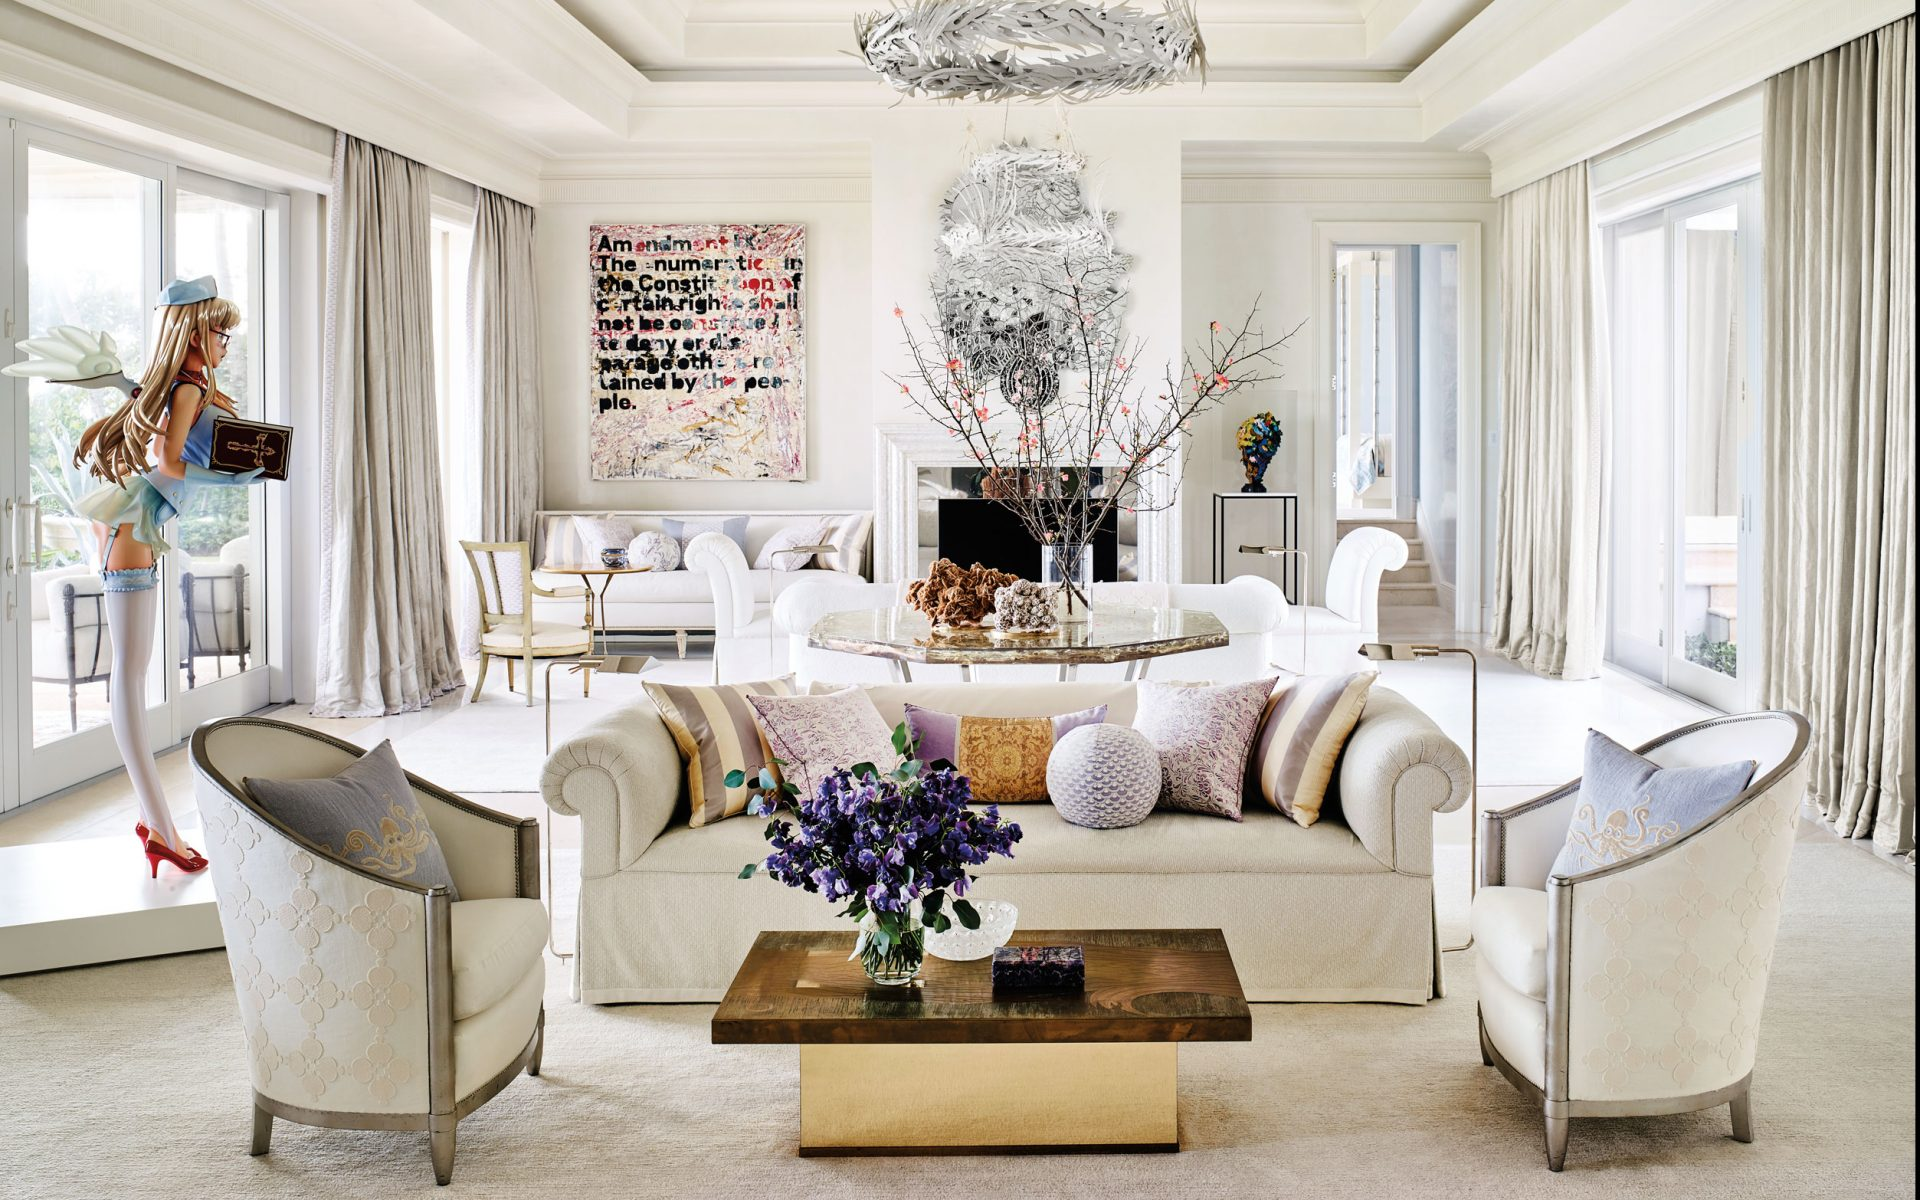 Interior Design Firm Aman Meeks And Architect Michael Perry Gave A Glamorous Update To Palm Beach Estate Owned By Blue Chip Collectors